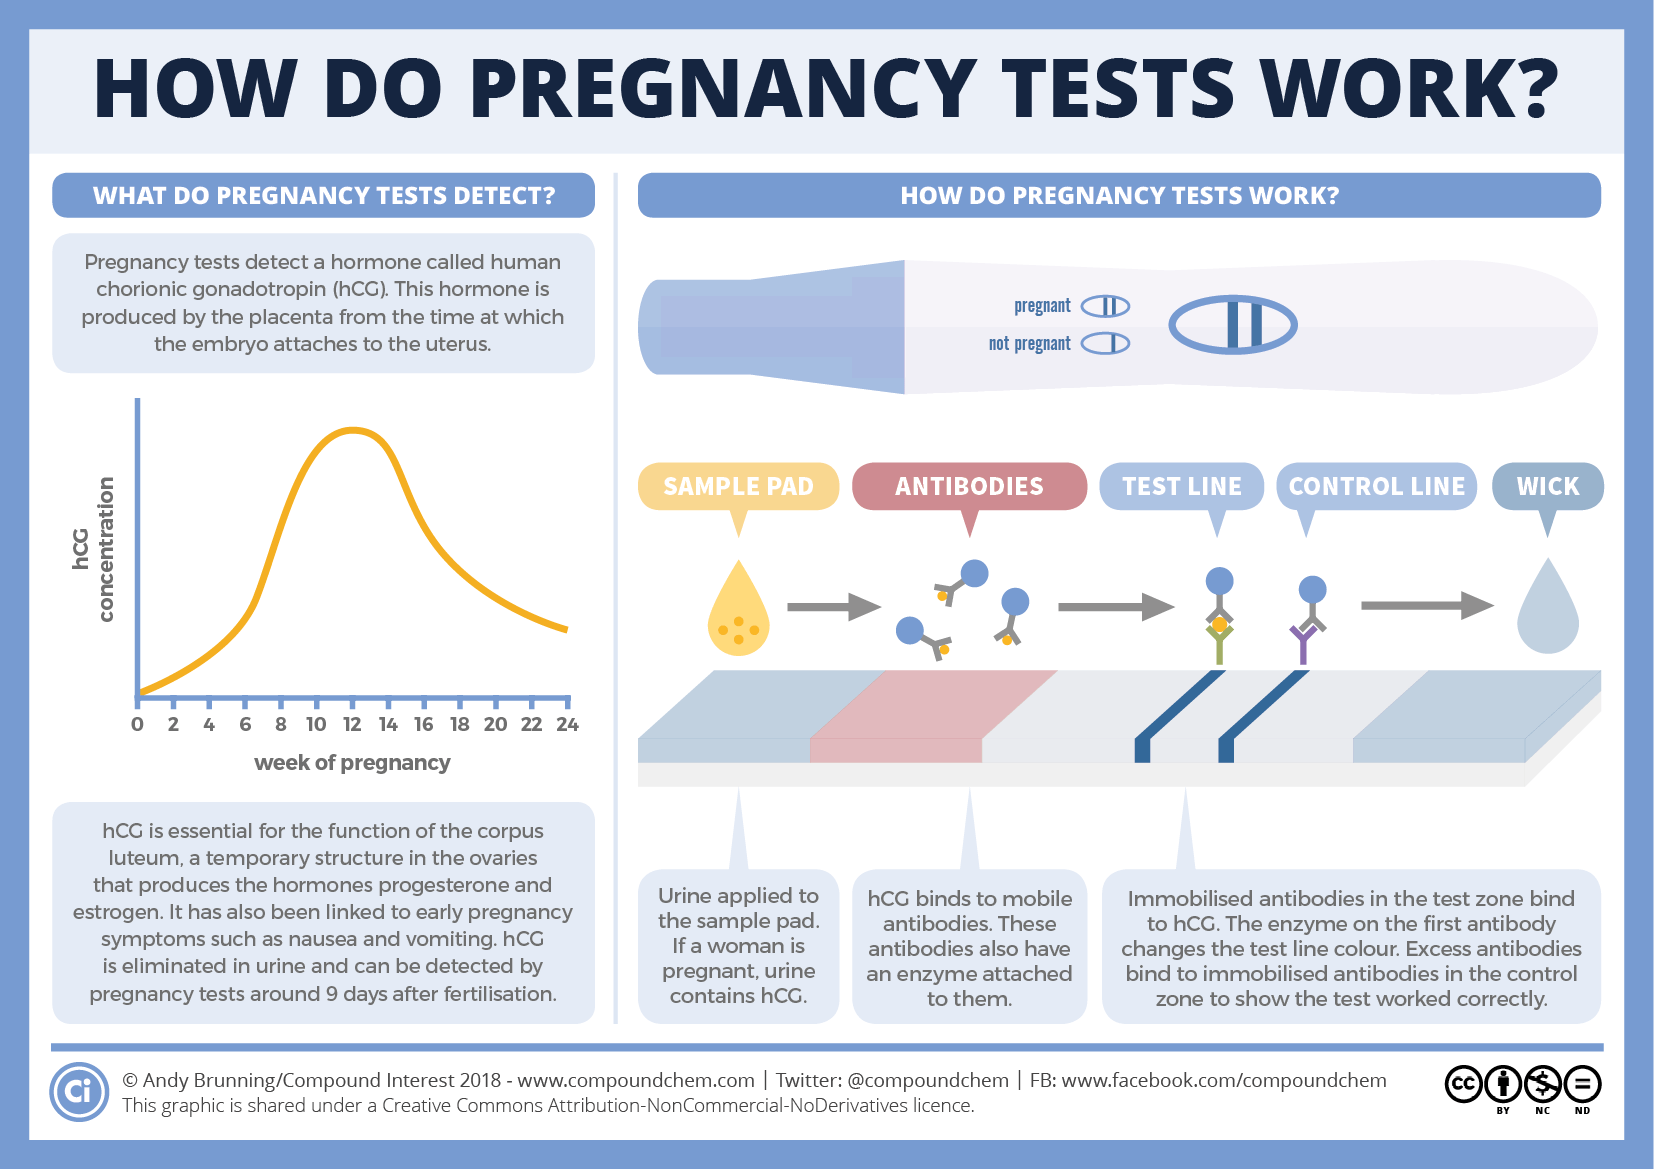 How do pregnancy tests work_